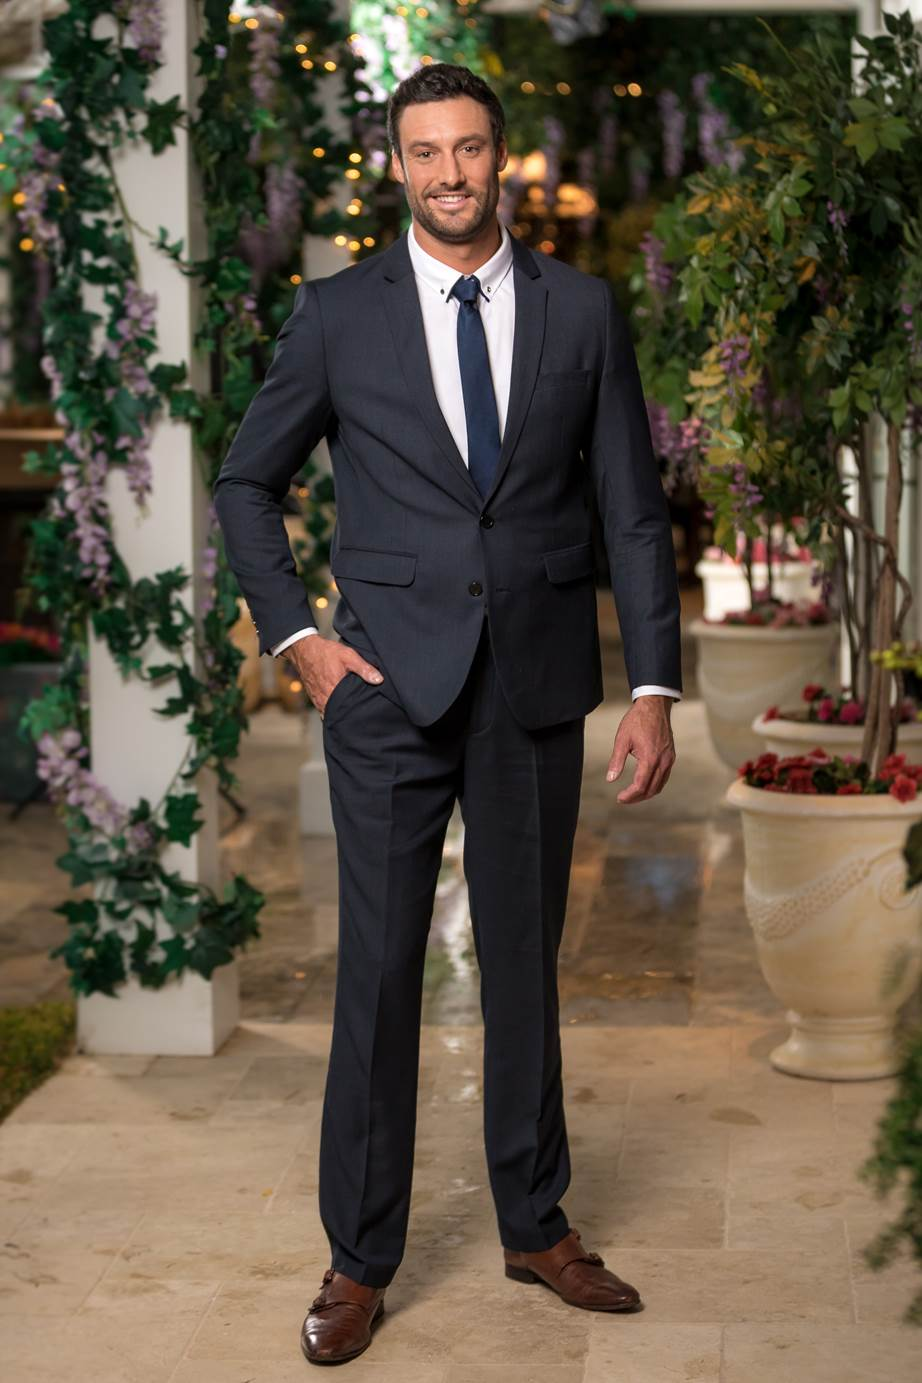 Charlie Newling - Mr Perfect - *Sleuthing Spoilers*  - Page 4 1538091973808_TheBacheloretteAustralia-S4Ep1Charlie